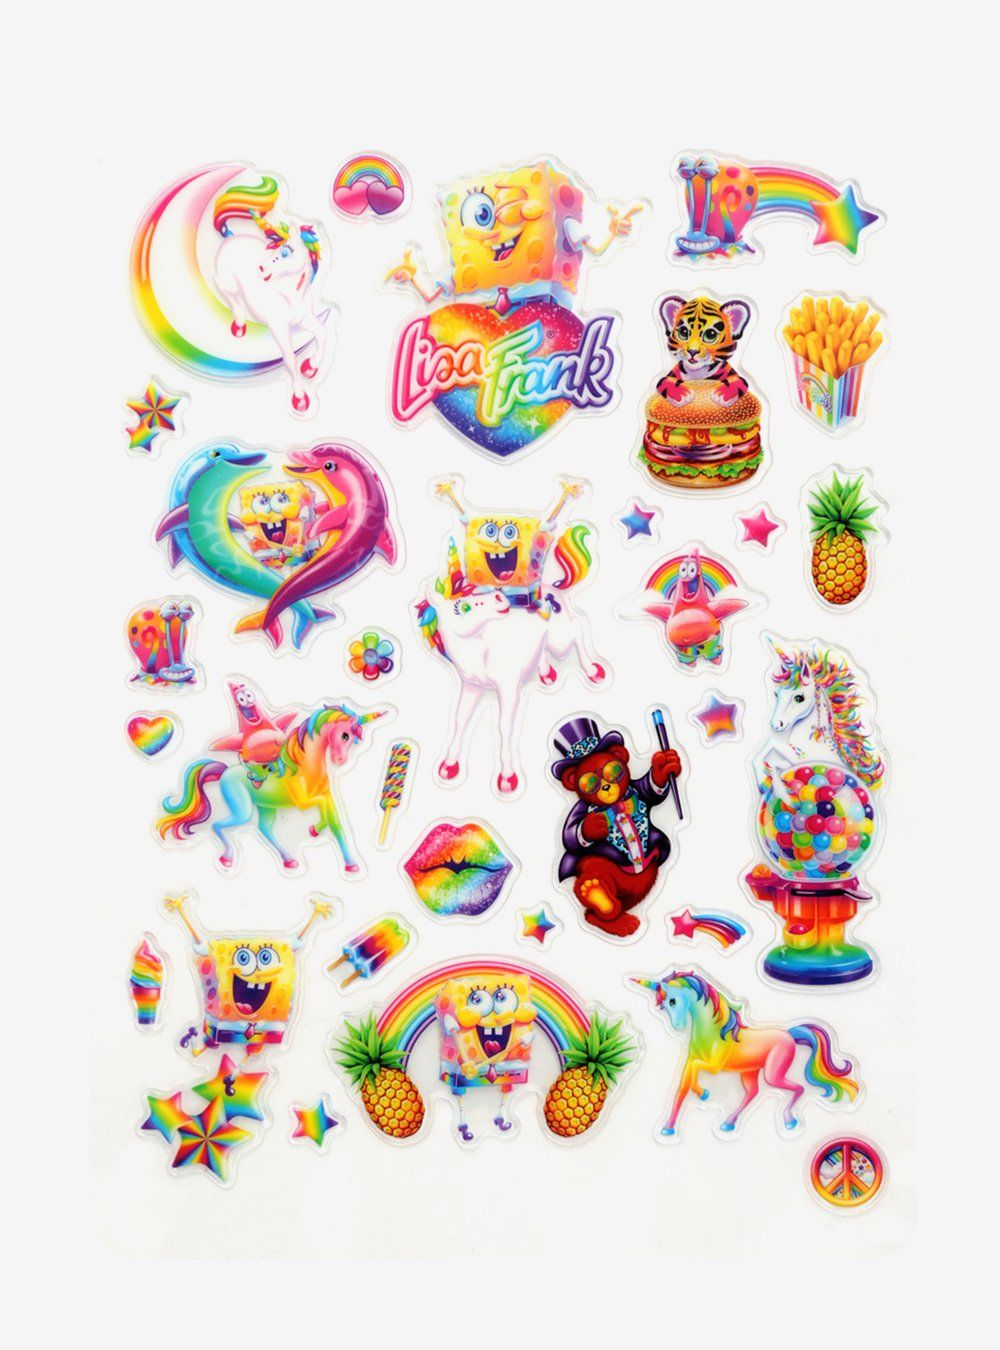 90s Kids Red Alert Lisa Frank Has A Freakin Spongebob Line And It S All Under 35 Lisa Frank Stickers Lisa Frank Sticker Art